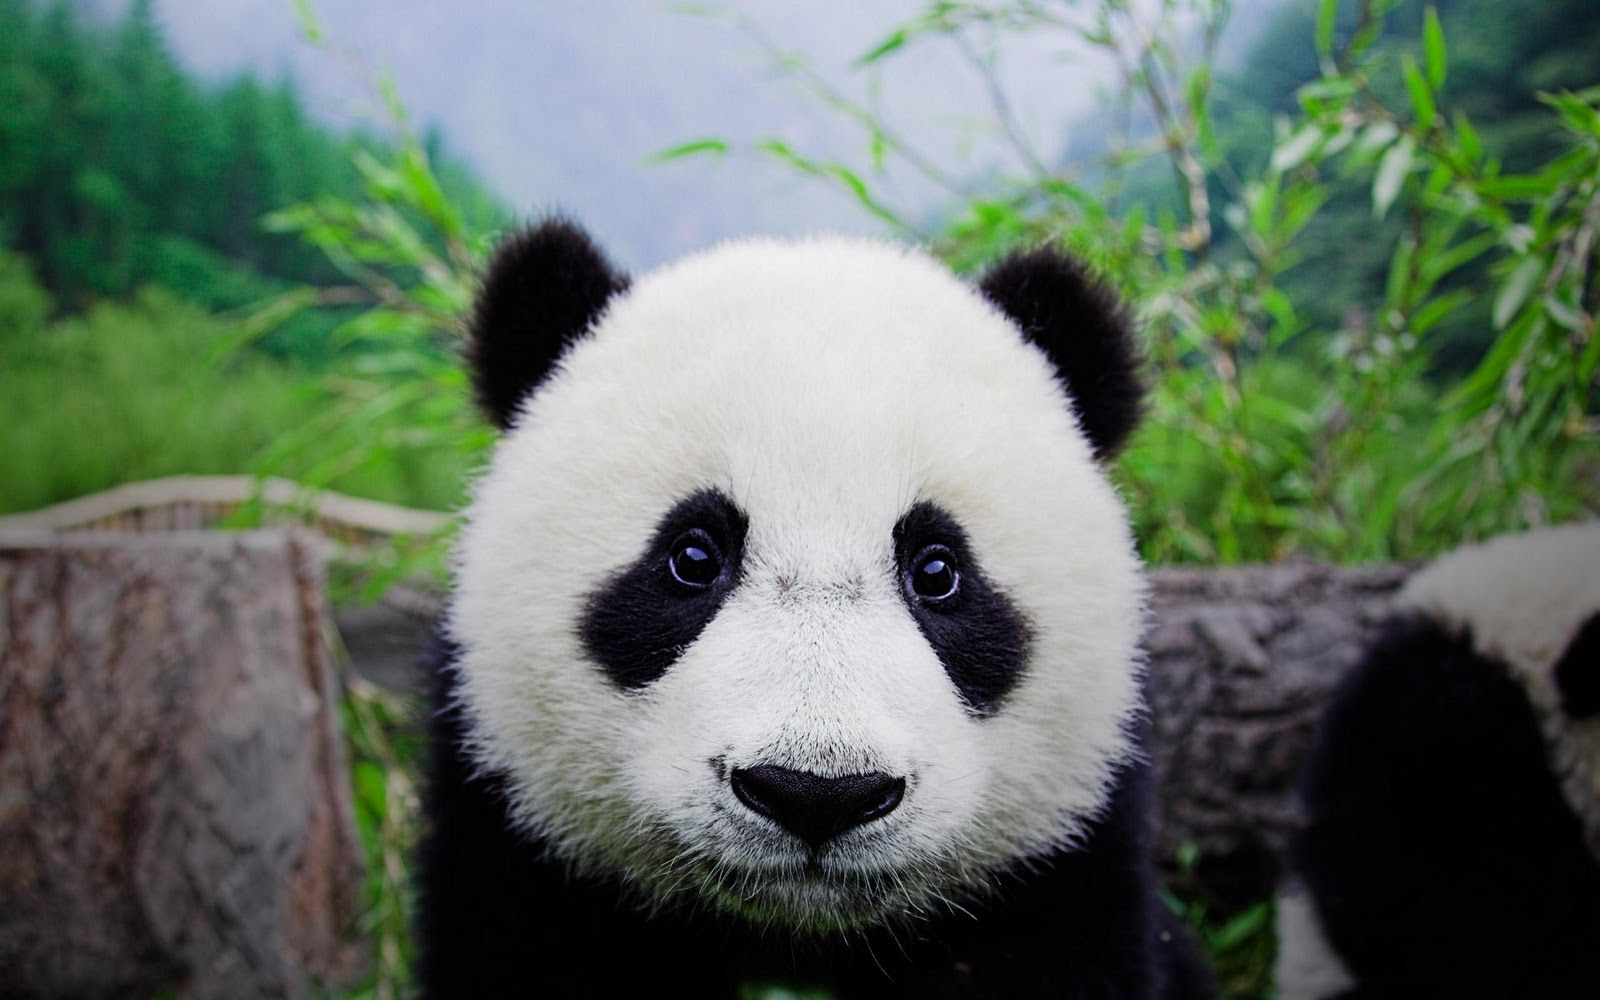 panda face - Google Search | PANDA cuteness and fun ...